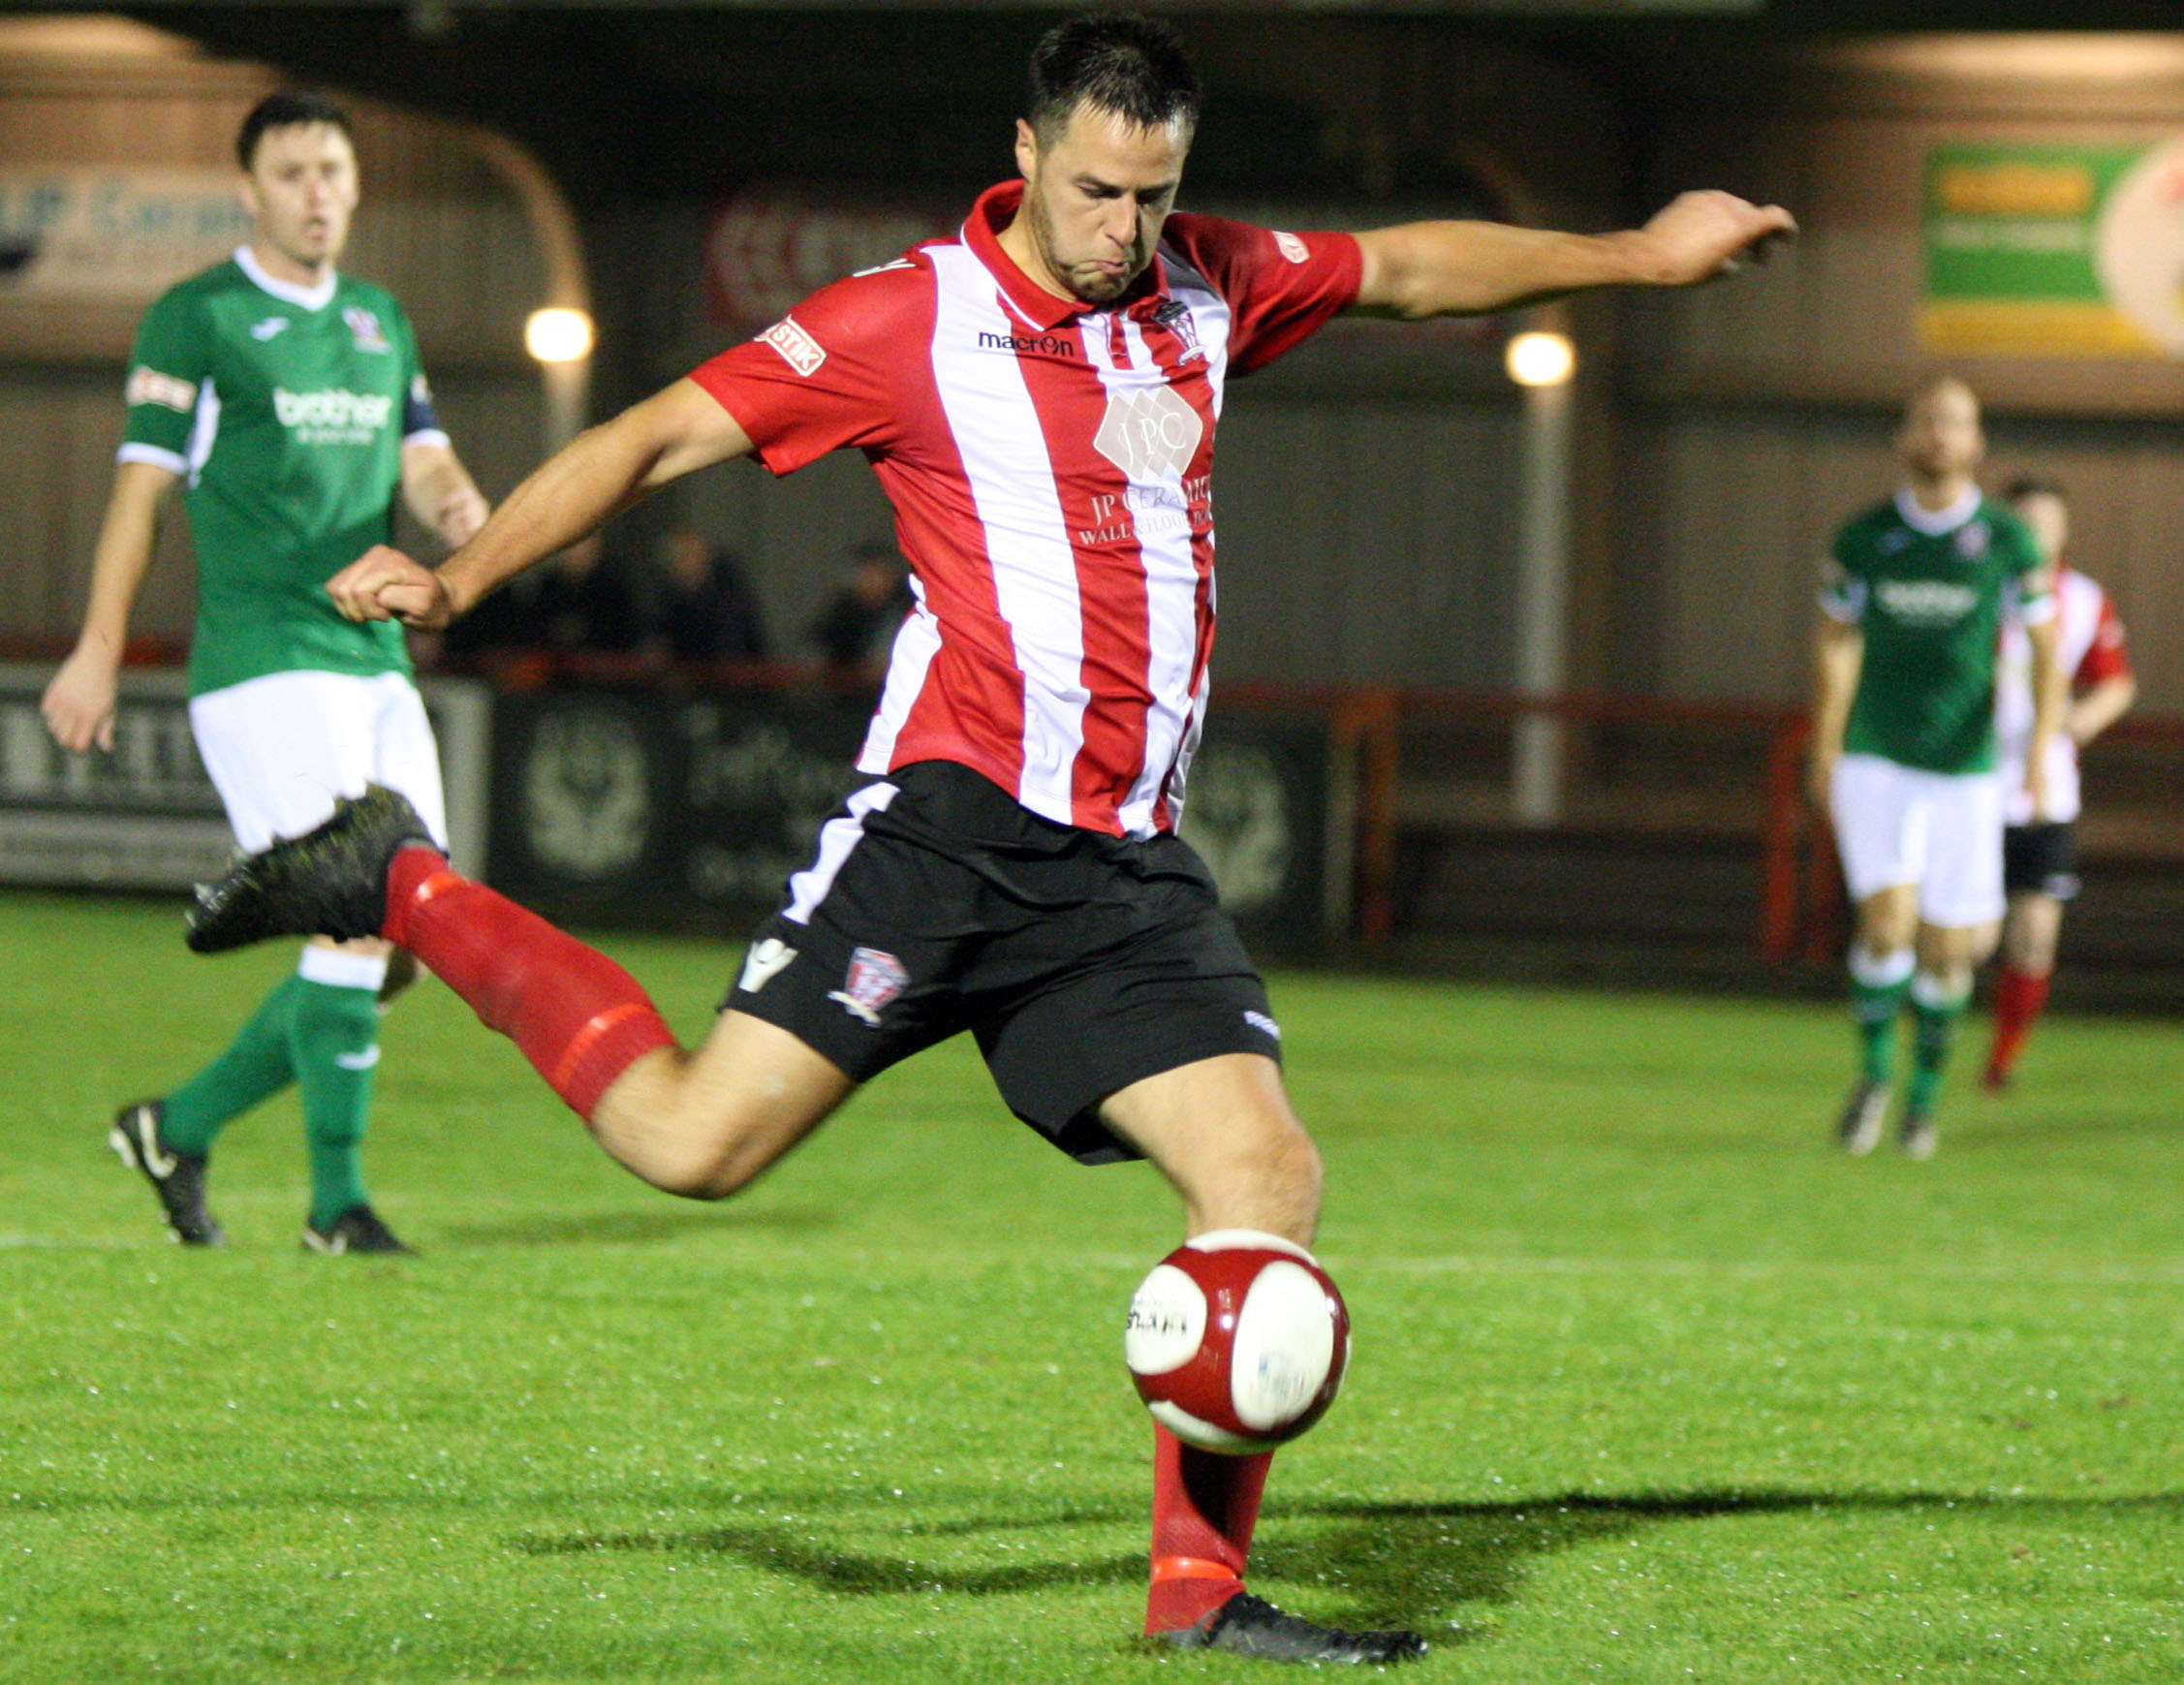 Rob Hopley and his Witton Albion teammates hope to end a goal-drought that has lasted close to five hours when they visit Hednesford Town tomorrow